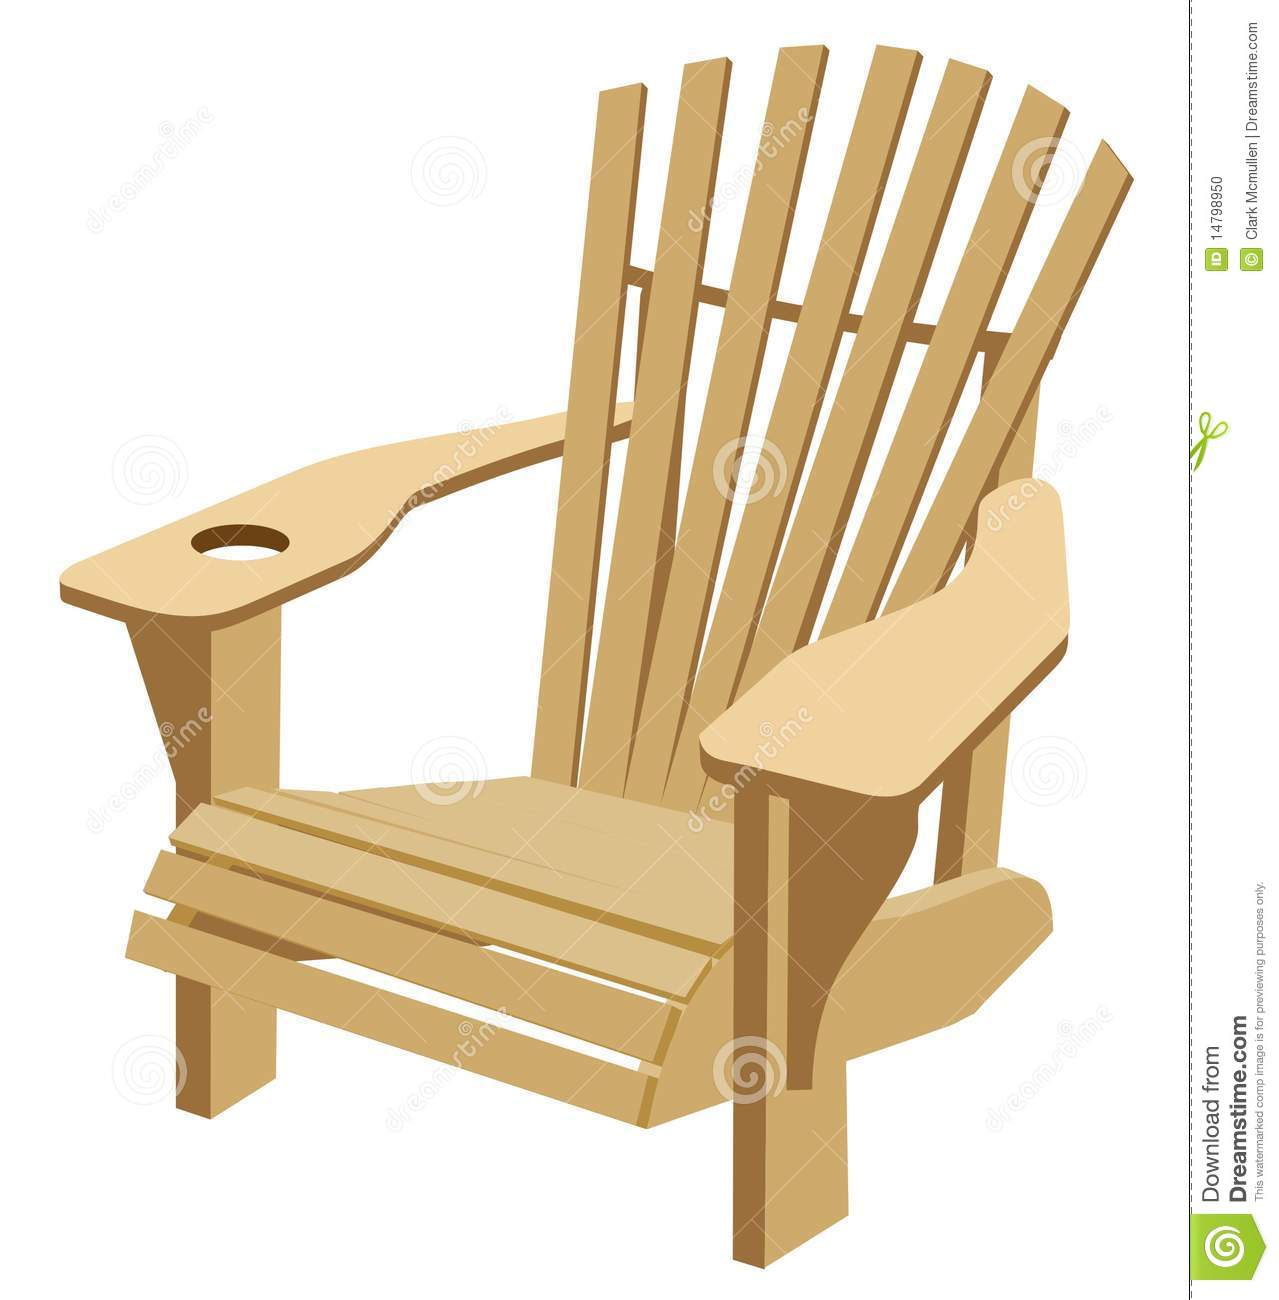 Adirondack Chairs On Beach Clip Art Adirondack muskoka chairAdirondack Beach Chair Clip Art